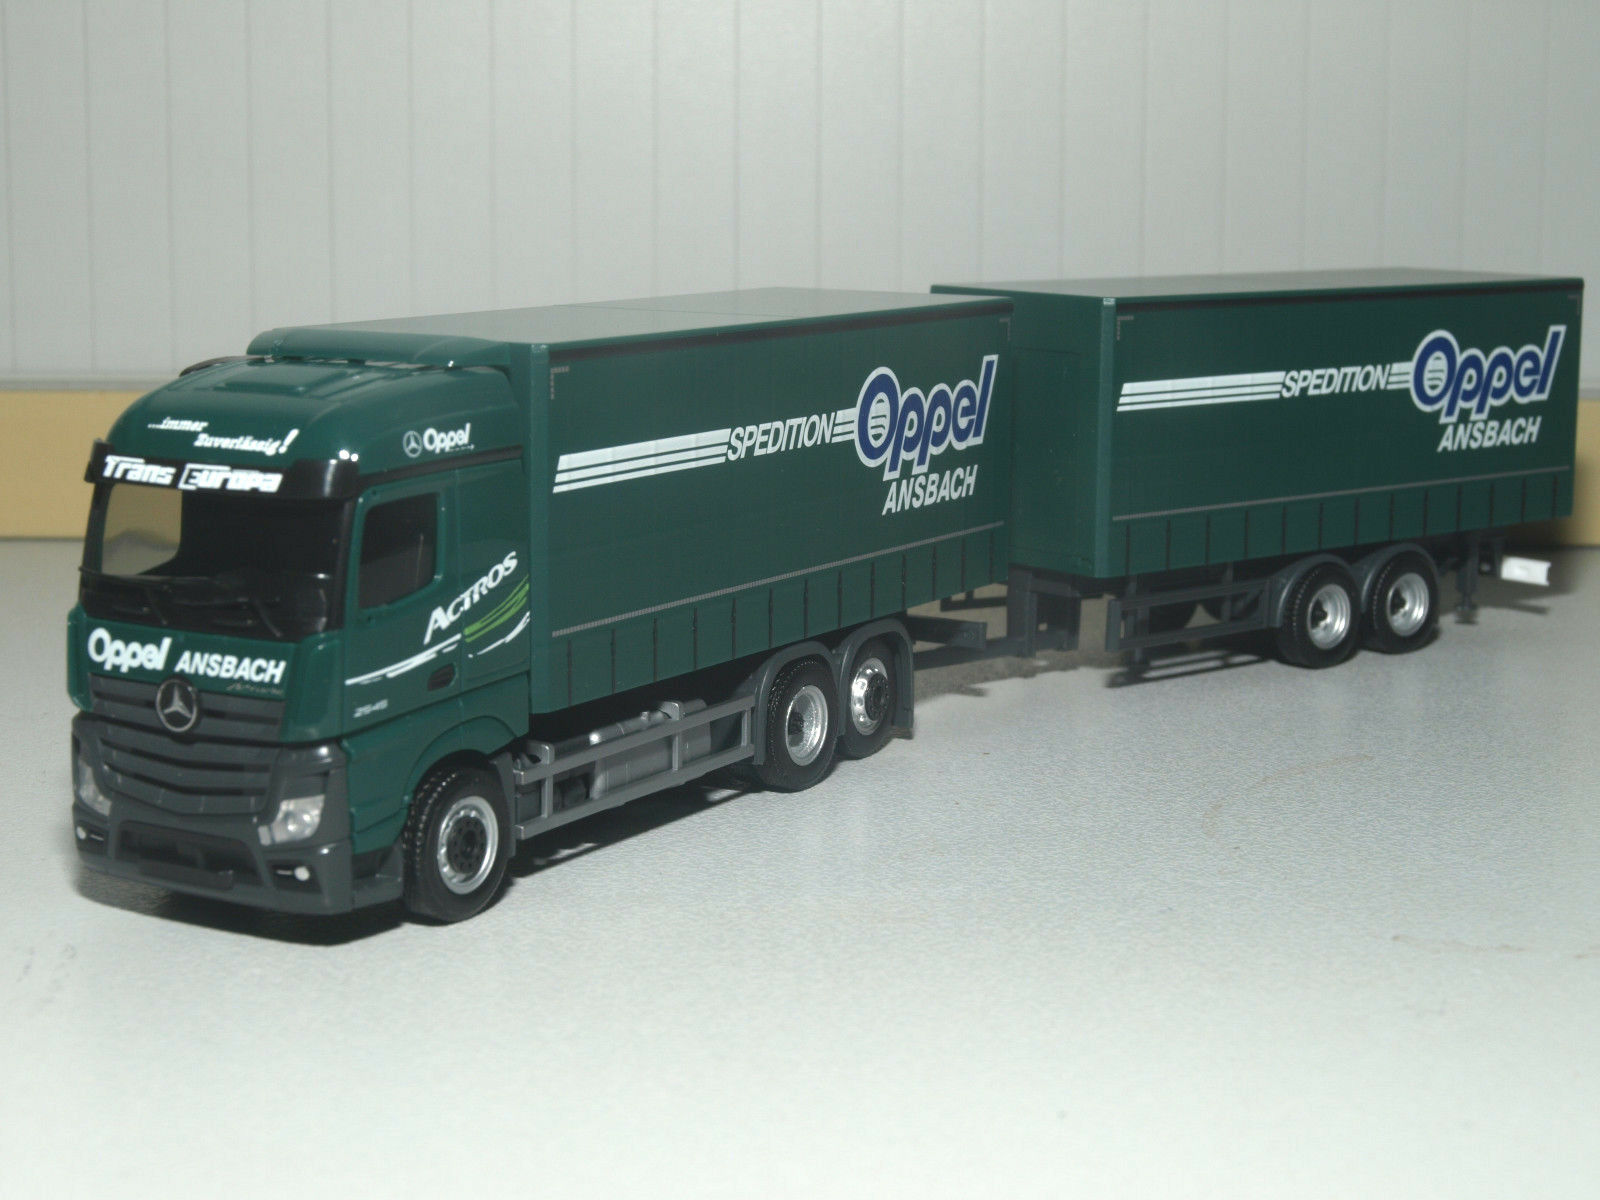 Herpa MB Actros Streamspace 2.5 rideaux planifier-Hängerzug OppeI Ansbach Ansbach Ansbach 307376 e6340a